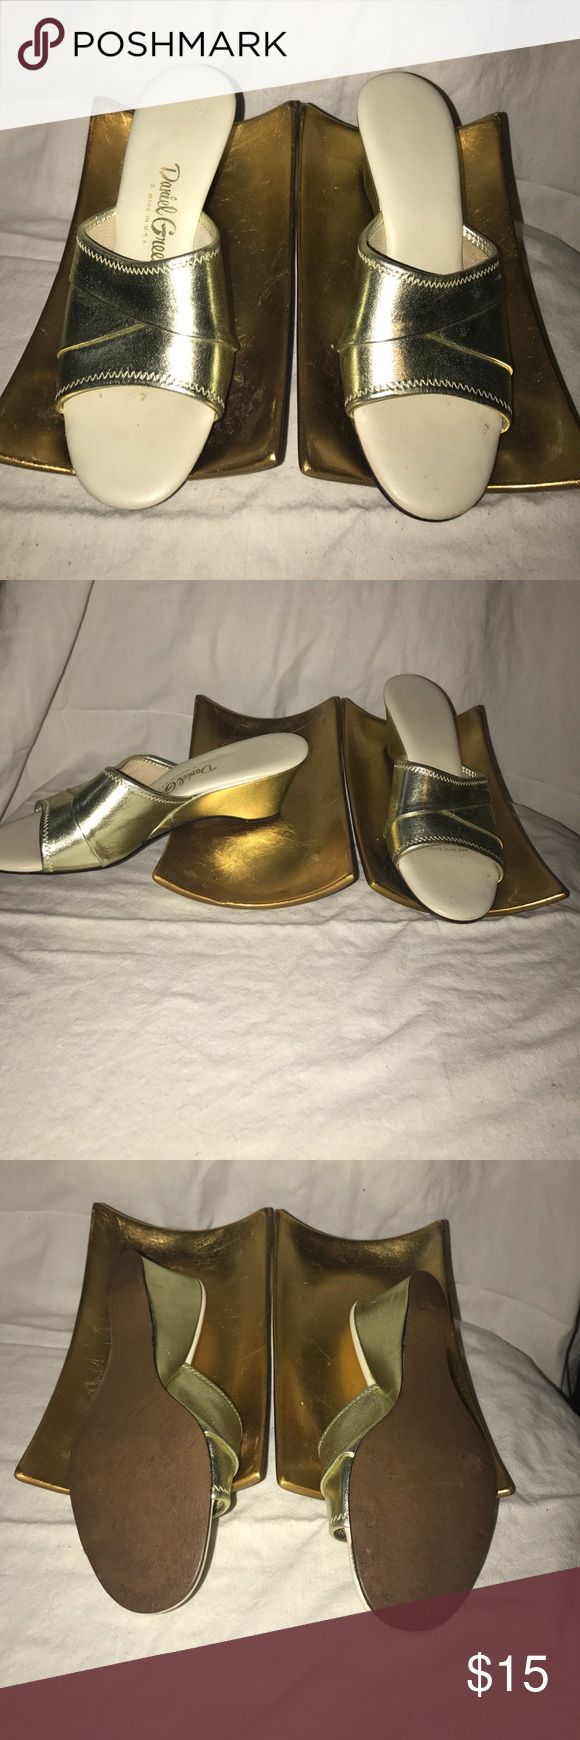 Vintage Daniel Green slippers house shoes Gold, size 7B. Made in the USA daniel green Shoes Slippers